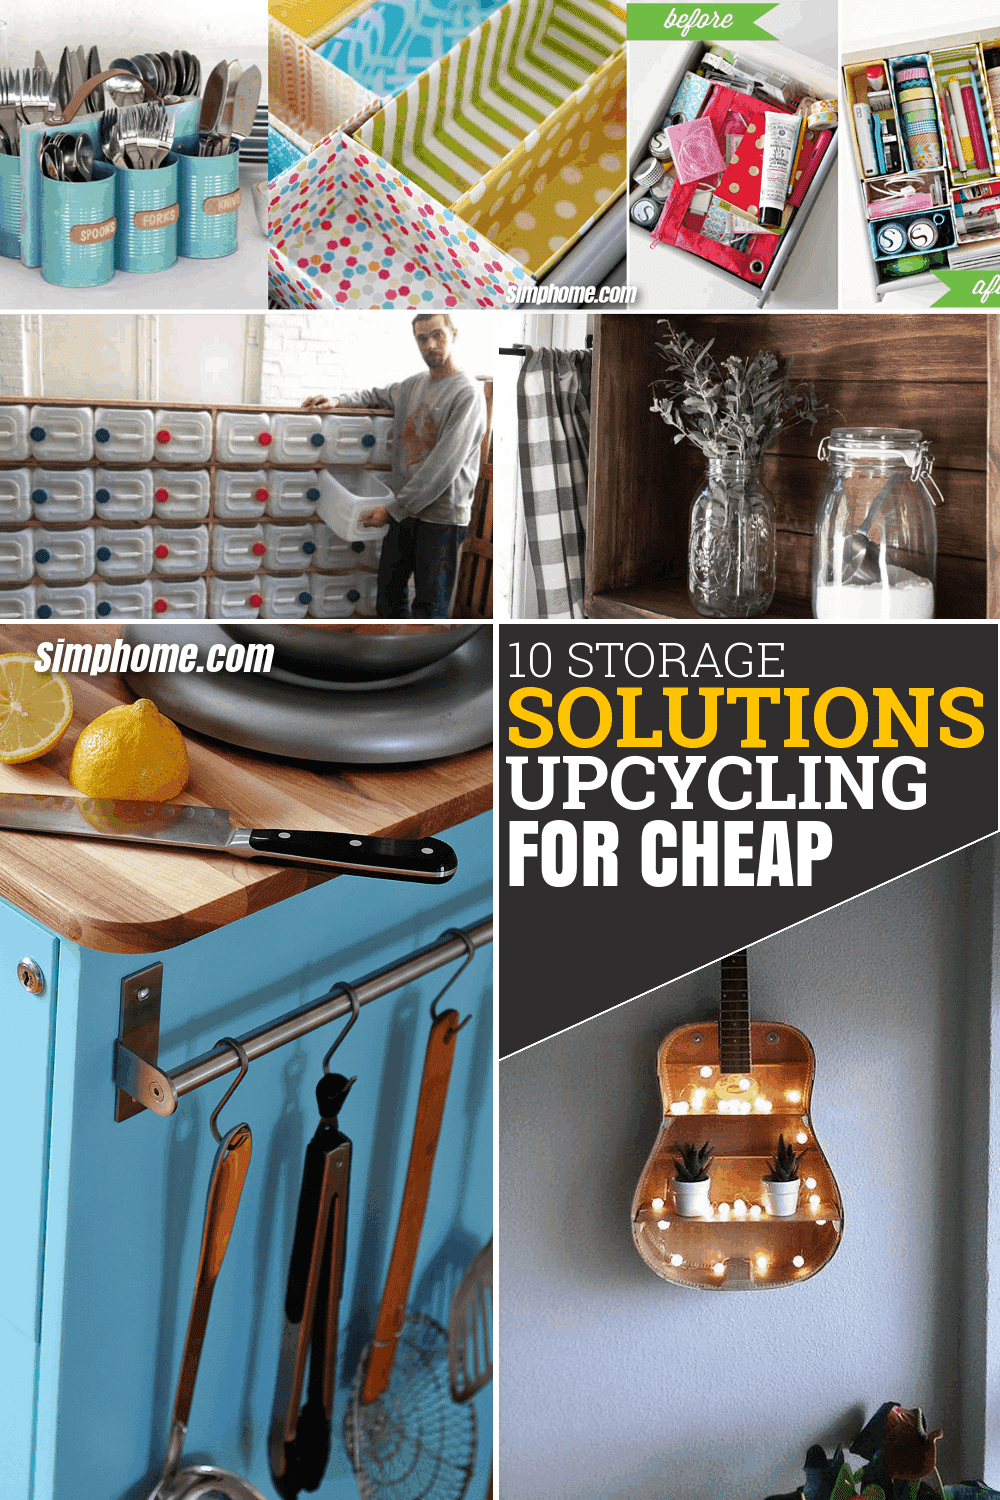 10 Storage Solution and Upcycling Ideas for Cheap via Simphome.com Featured Pinterest 1